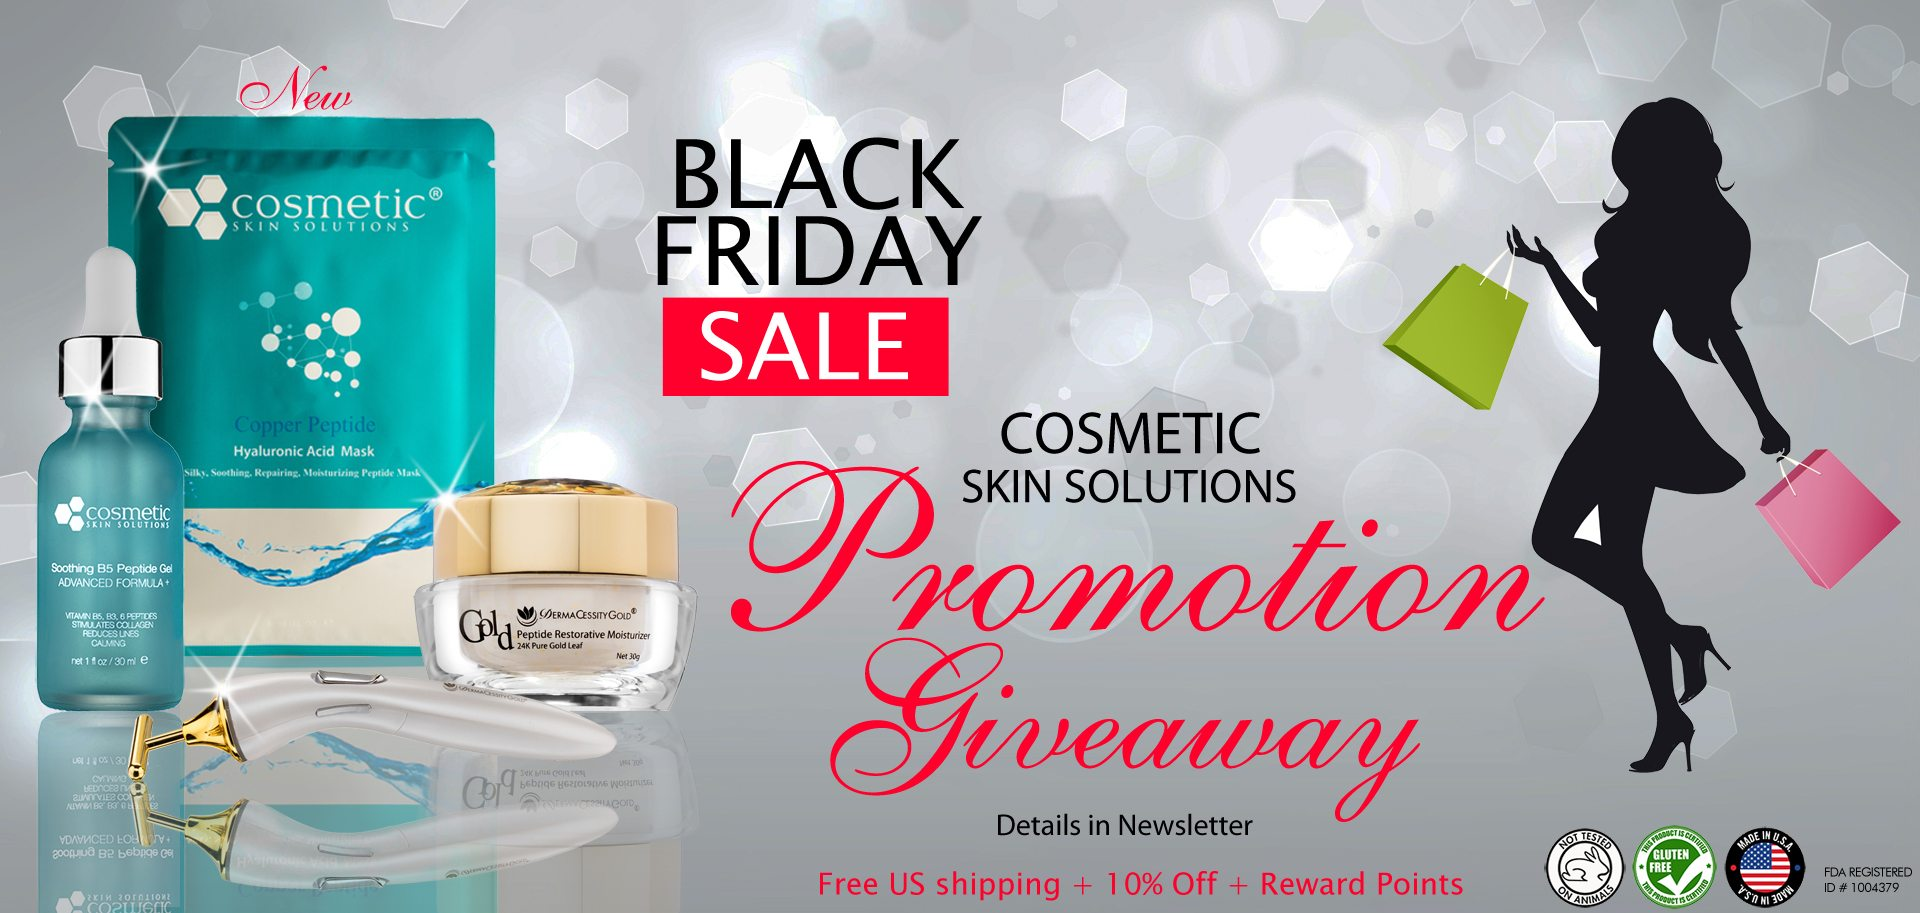 Black Friday Sale, Cosmetic Skin Solutions Promotion Giveaway, Details in Newsletter, Free US Shipping + 10% Off + Reward Points